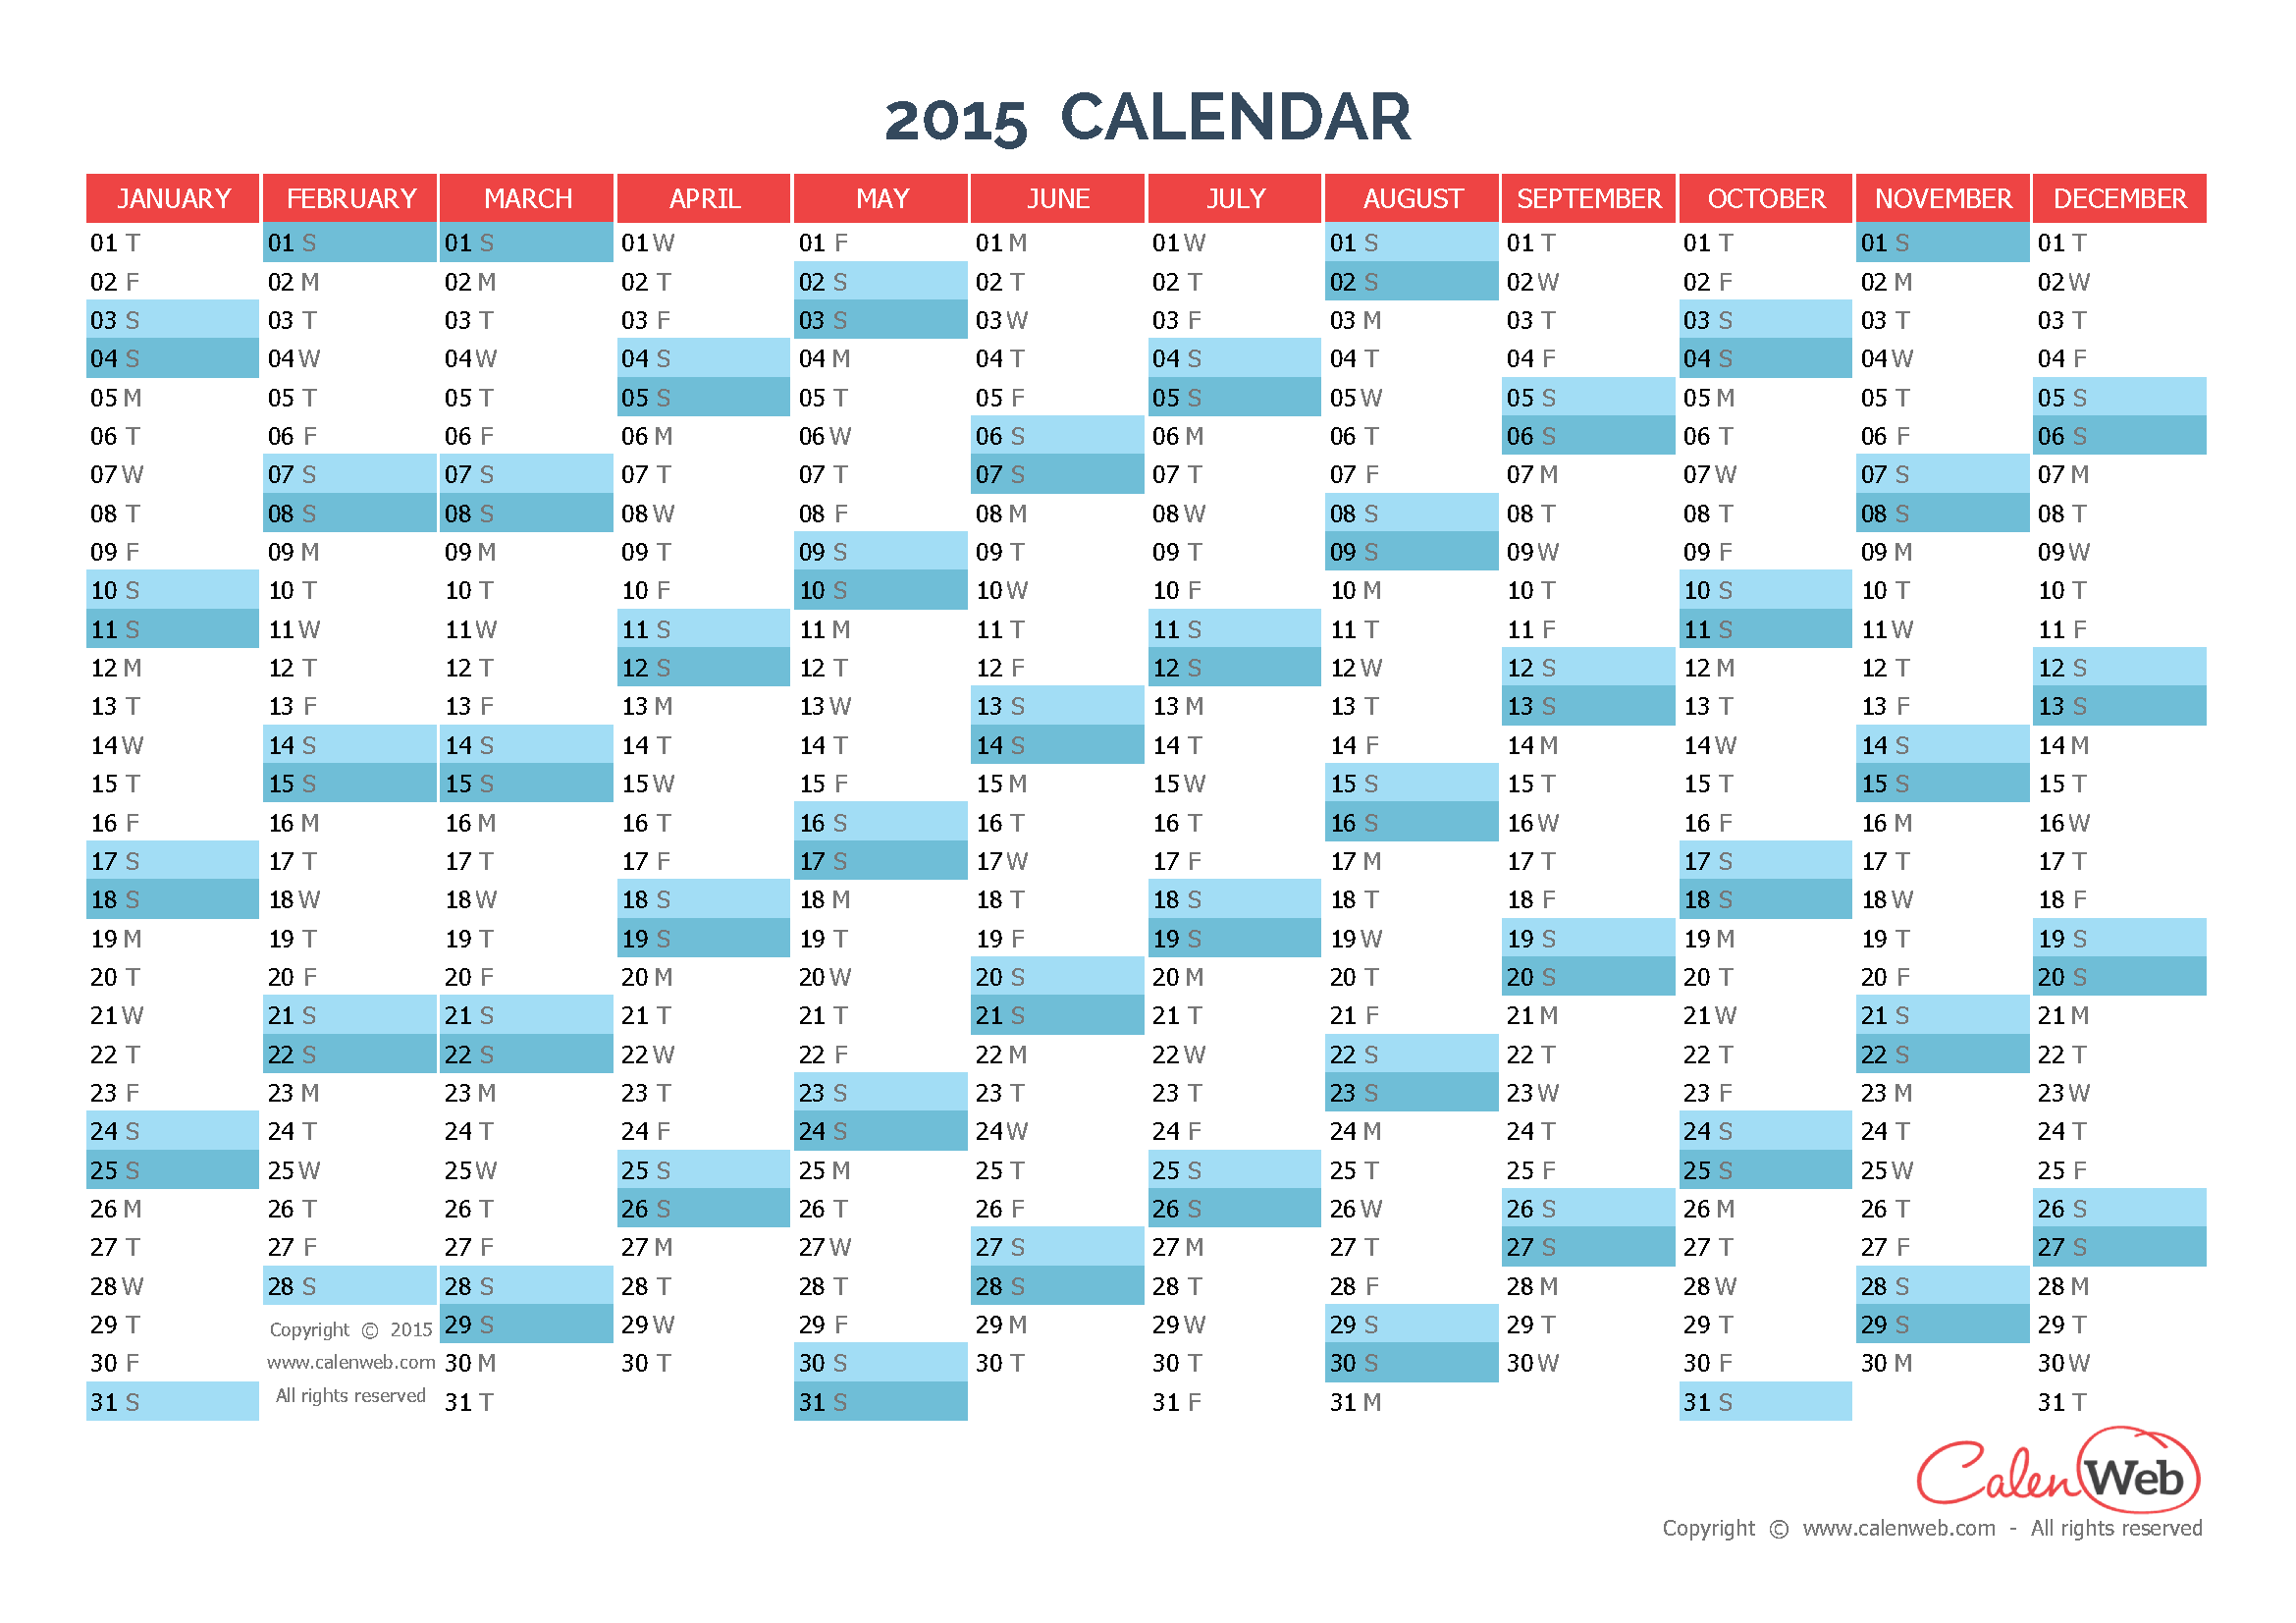 Yearly calendar – Year 2015 Yearly horizontal planning - Calenweb.com